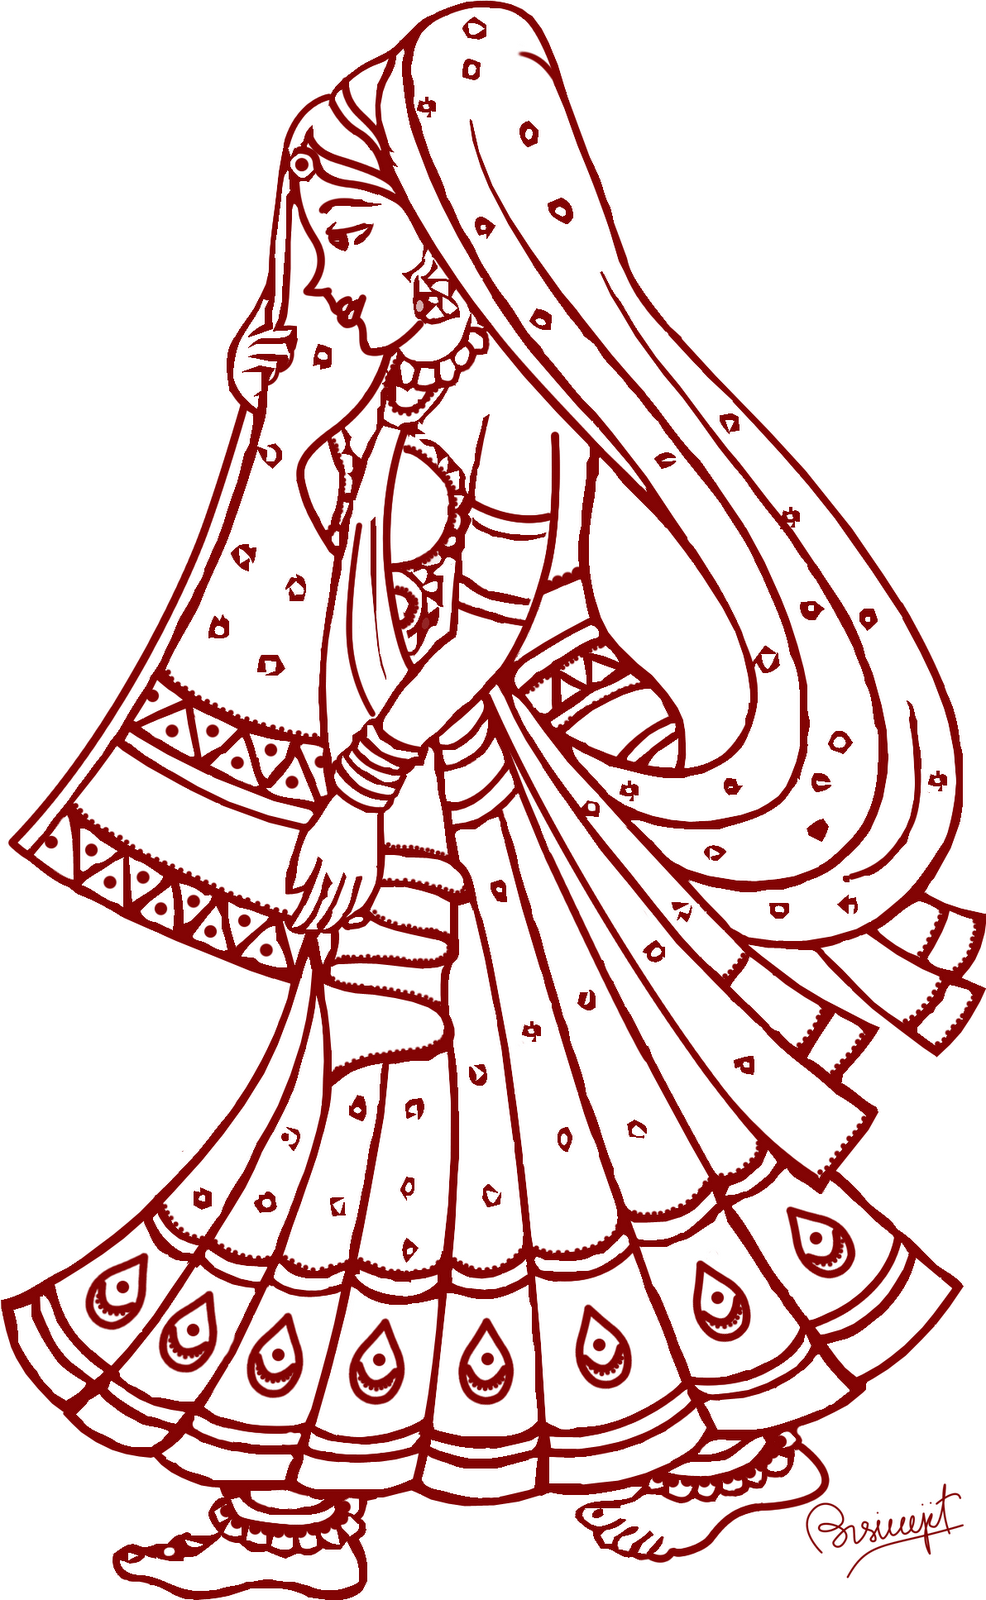 Wedding Card Line Art Designs : Indian wedding symbols clip art clipart best